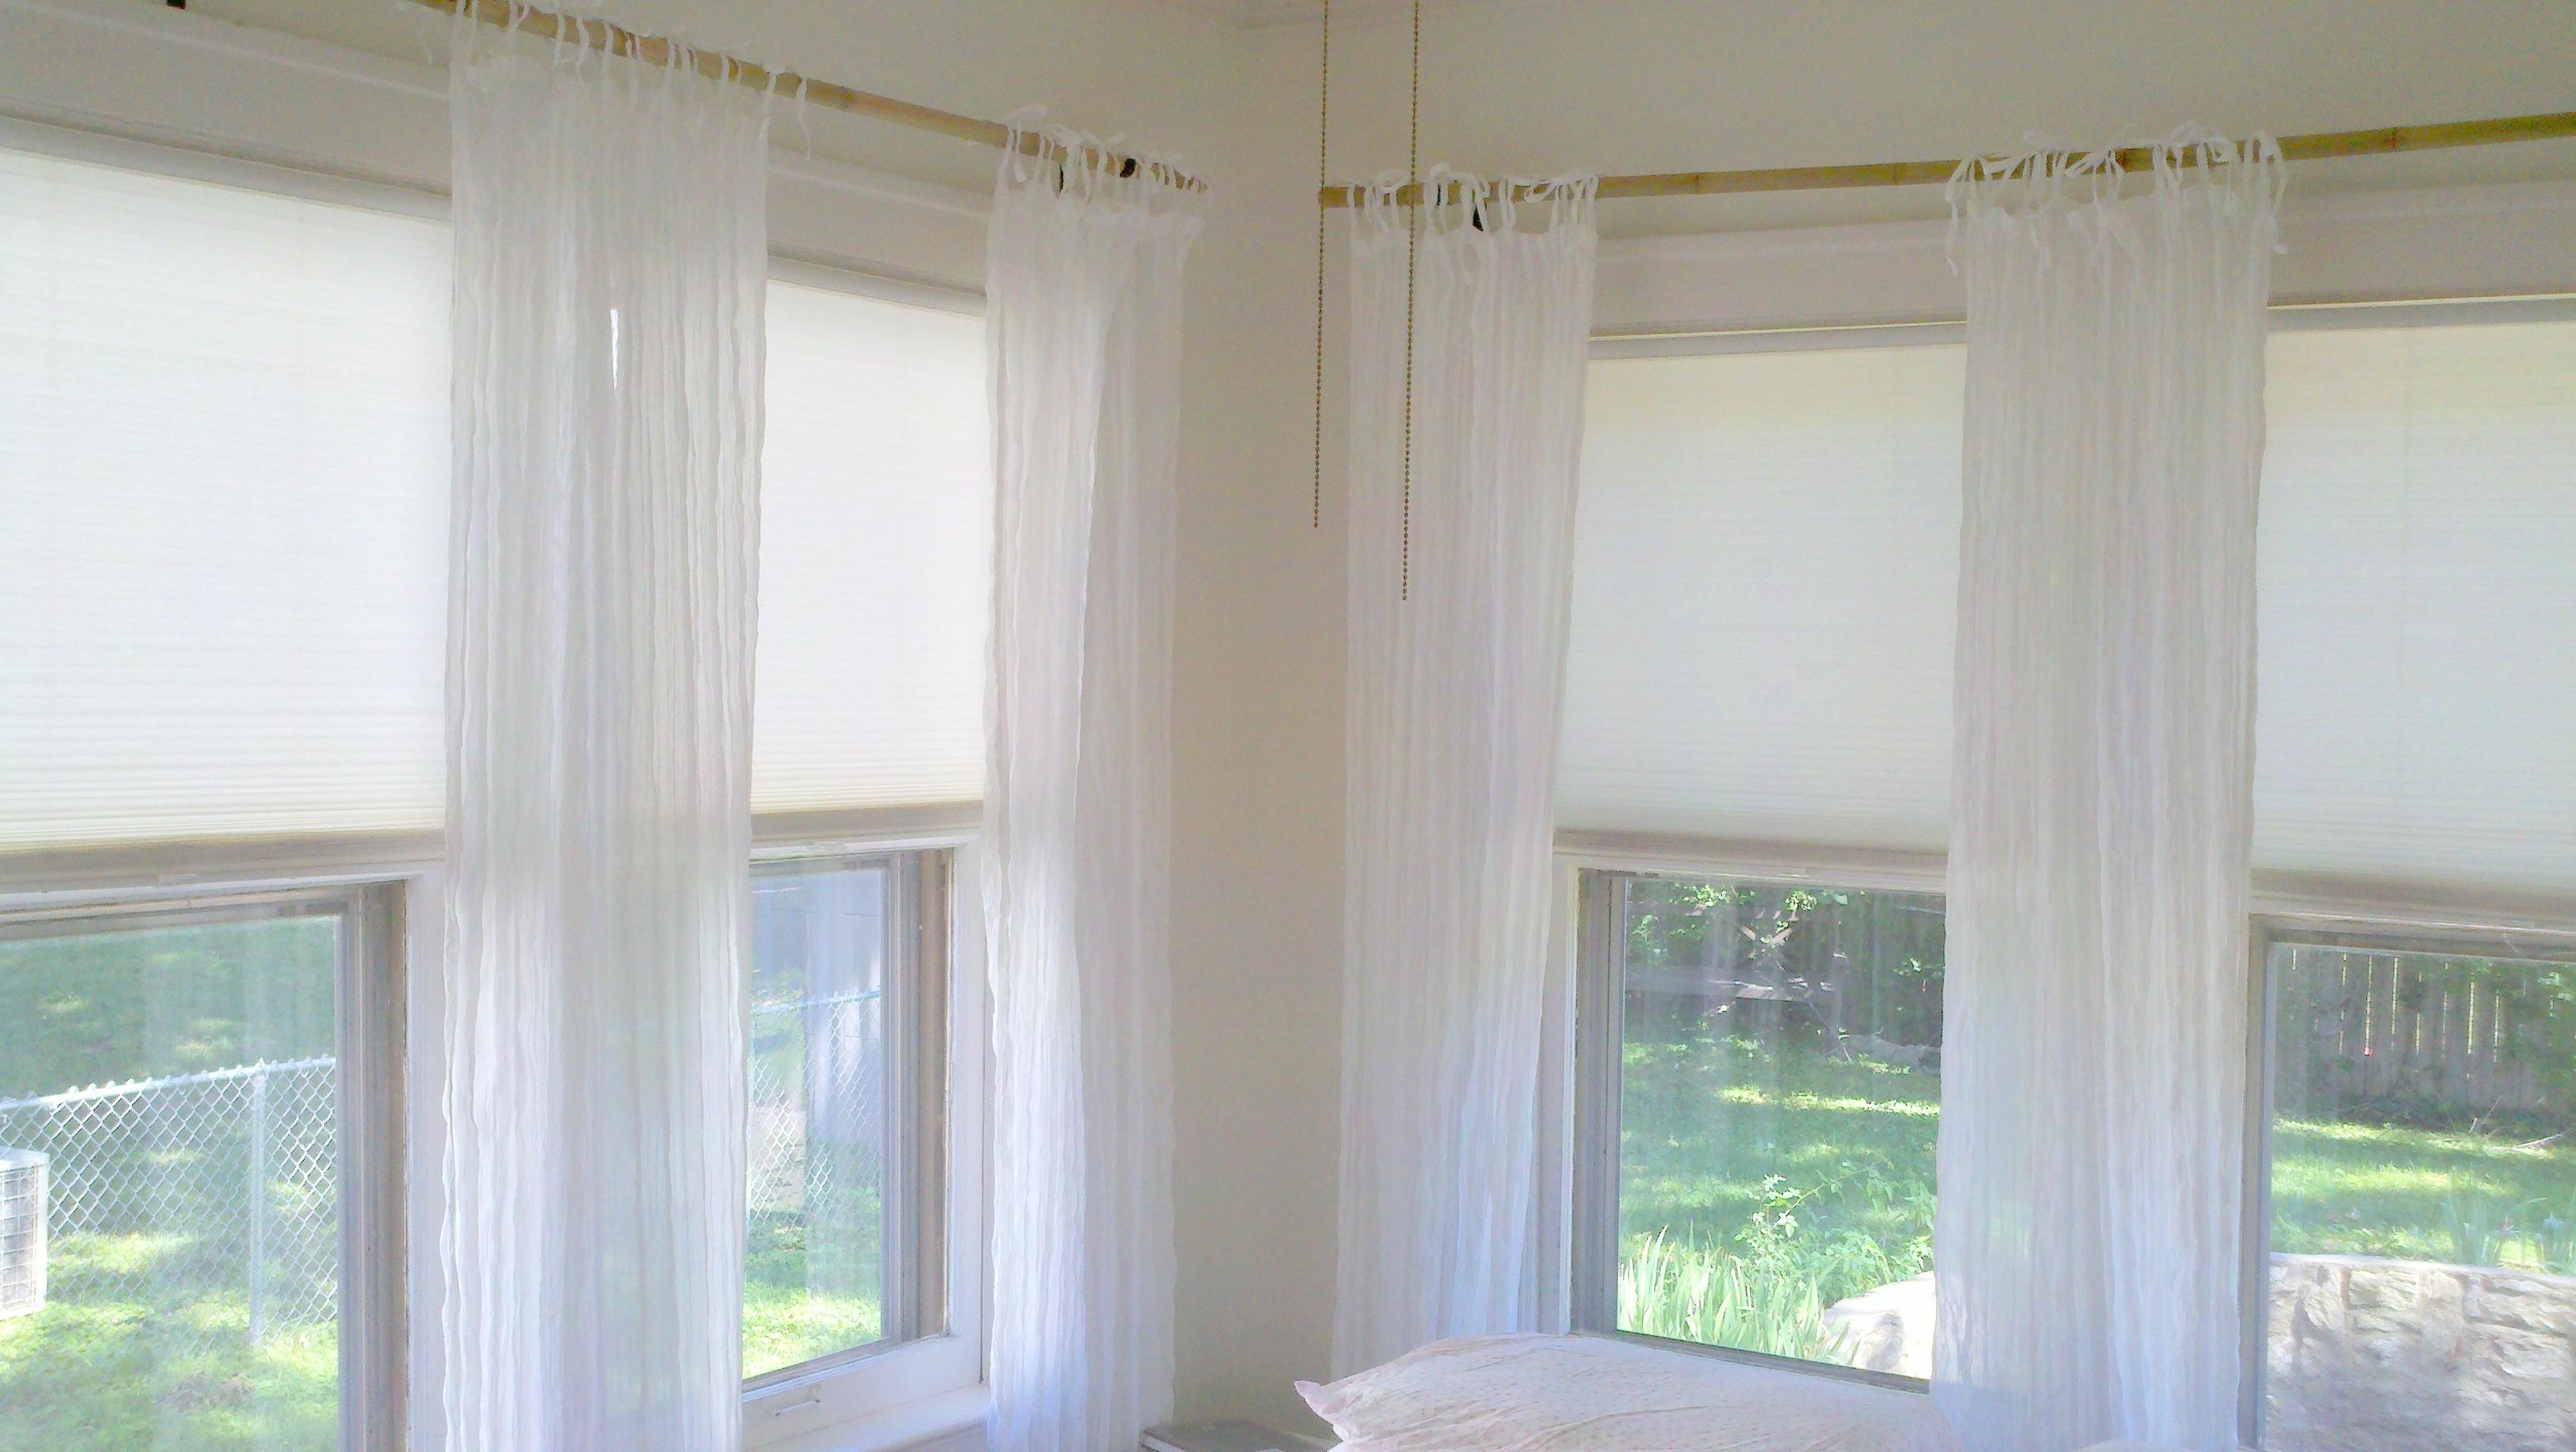 Bathroom Remodel Sheer Curtains Window